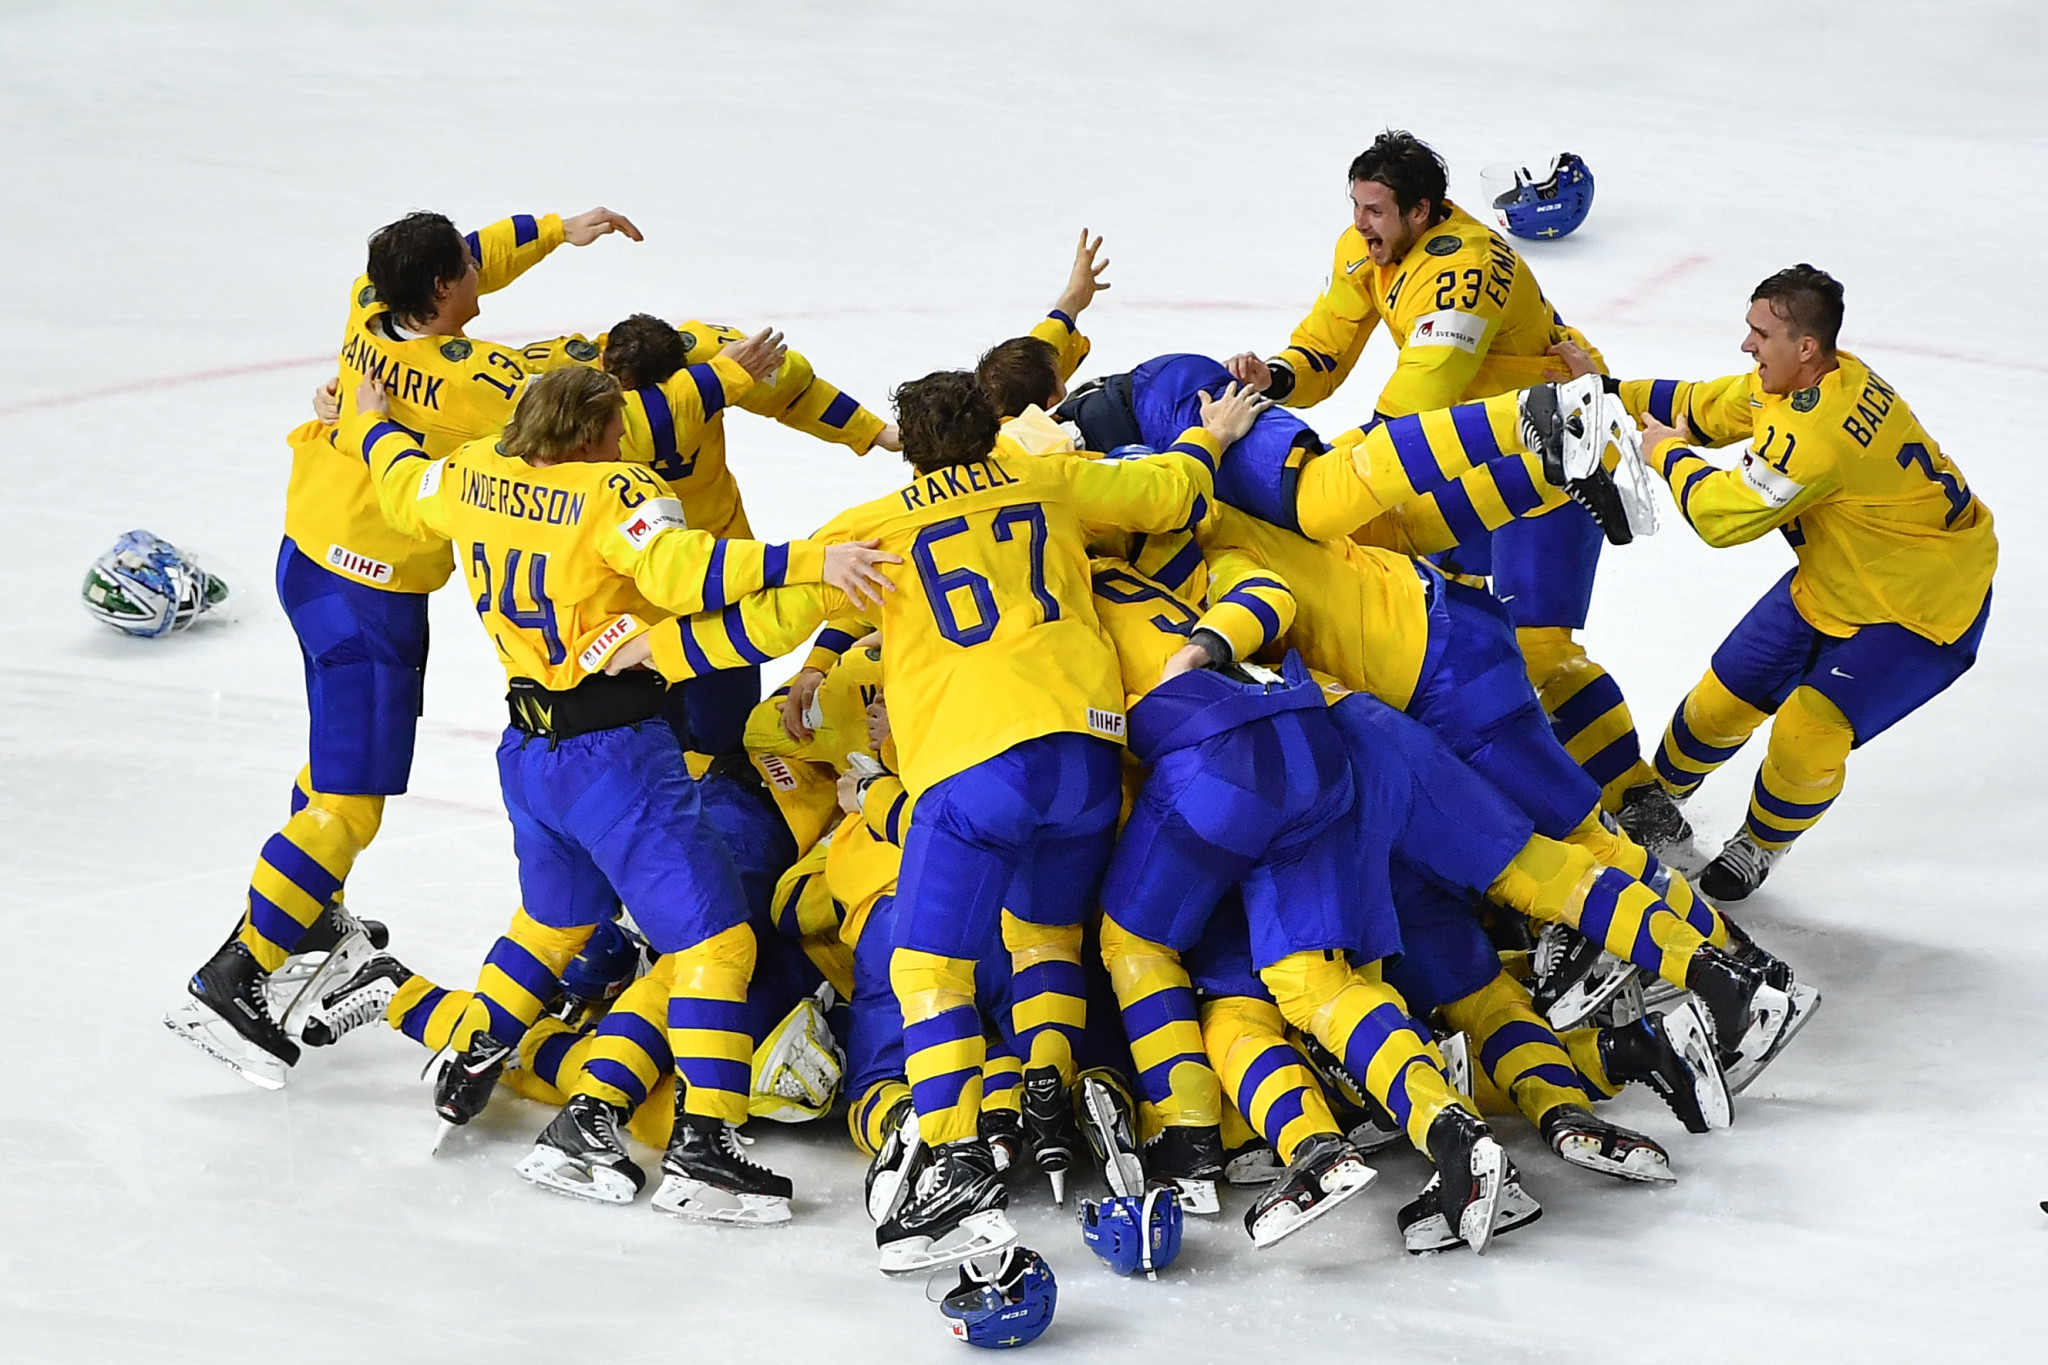 Back-to-back world champions Sweden have moved up to second position ©Getty Images